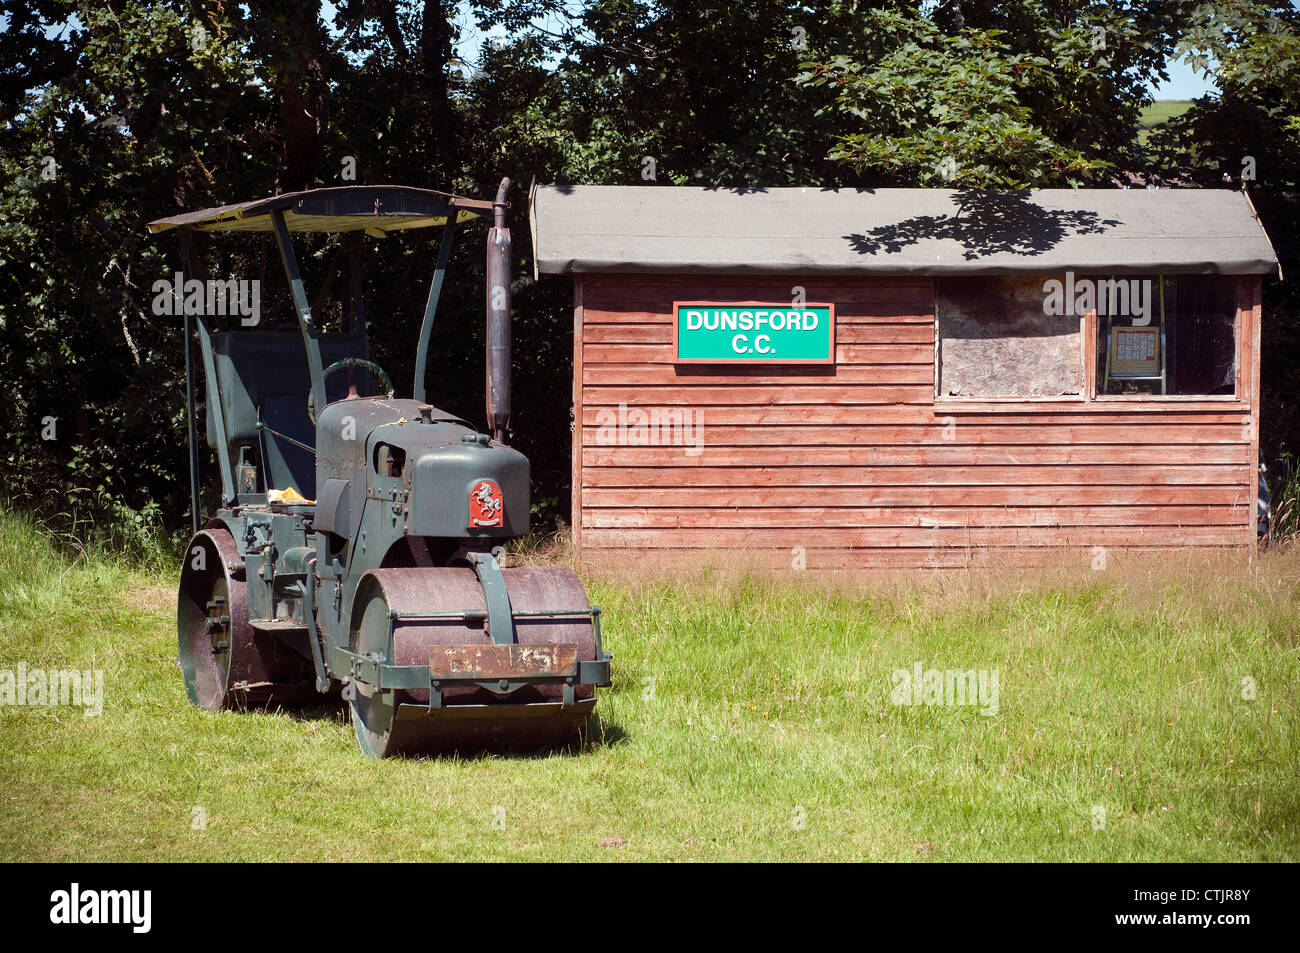 clubhouse, cottage, country, course, cricket, field, football, forest, garden, golf, grass, green, grounds, home, - Stock Image